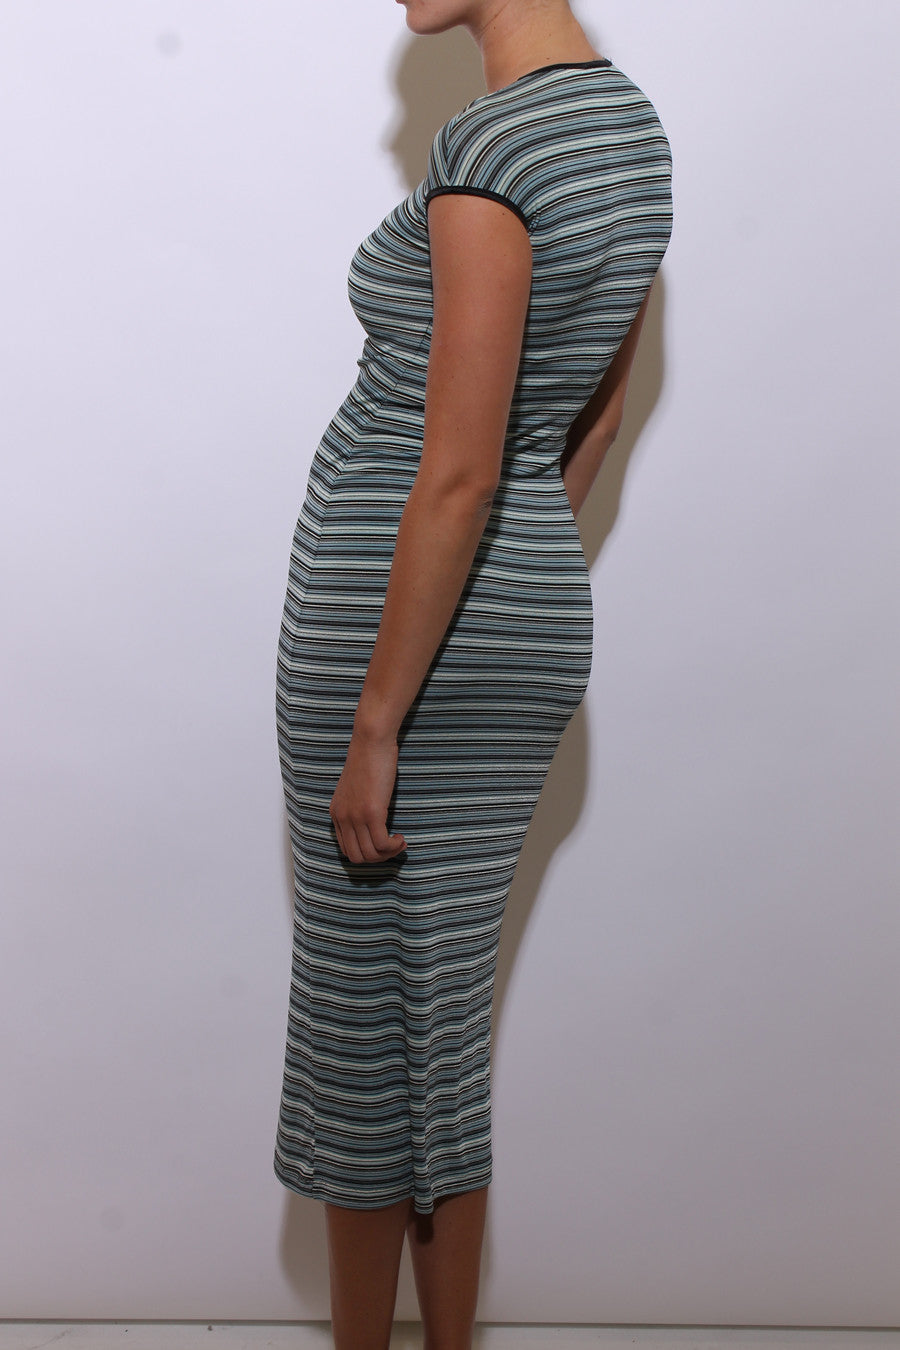 vintage 1990's 90's striped blue maxi dress stretchy side slits body con XS-S